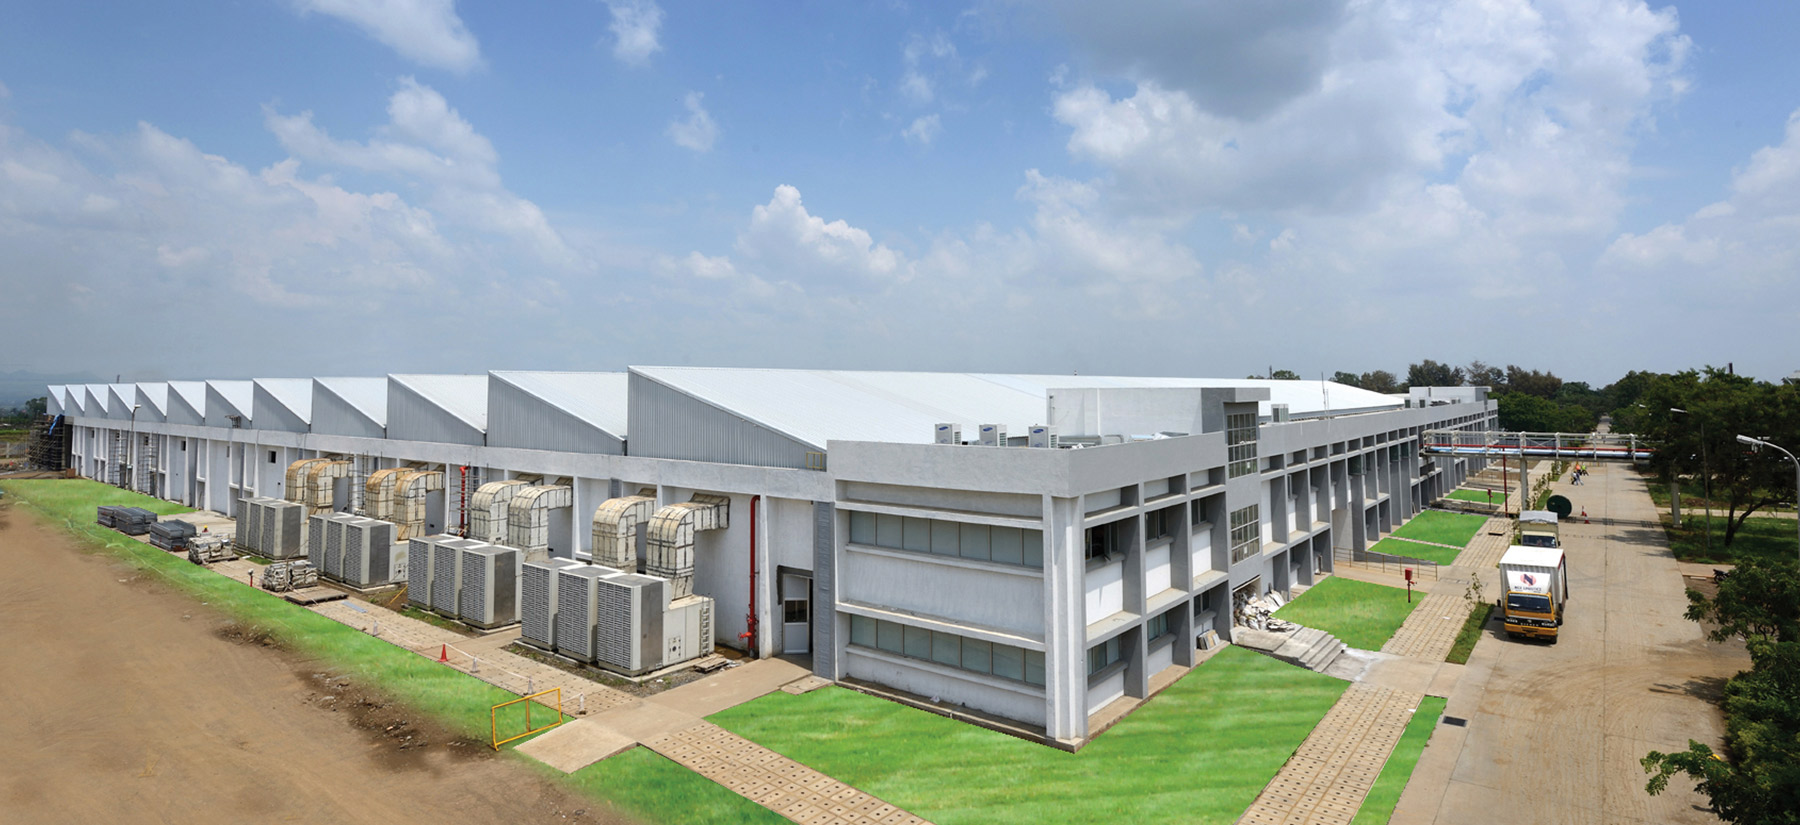 ECOBUILD® Building System is the most reliable solution